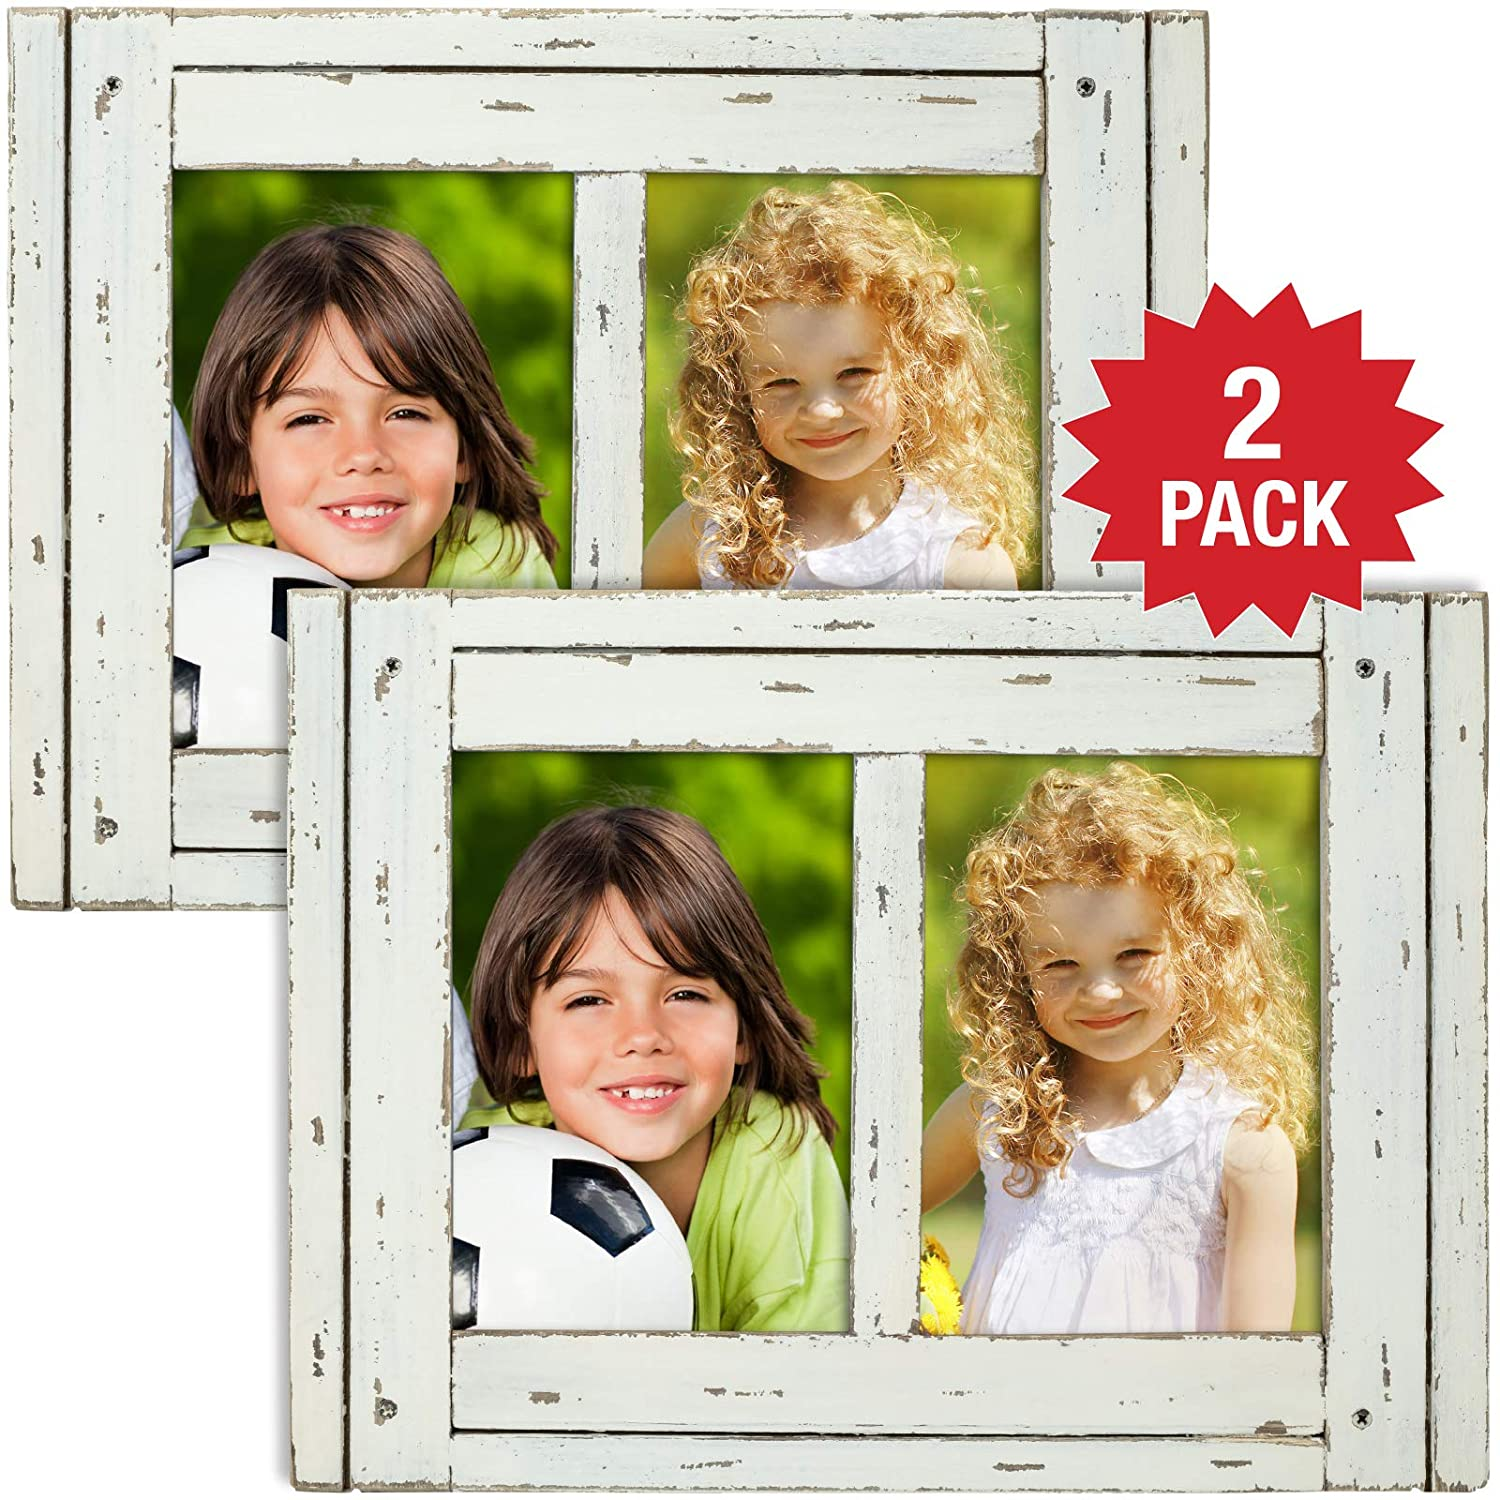 Excello Global Products Rustic Shabby Chic White Weathered Distressed Vintage Style Wooden Picture Frame with Self-Stand Easel, Each Frame Holds Two 5